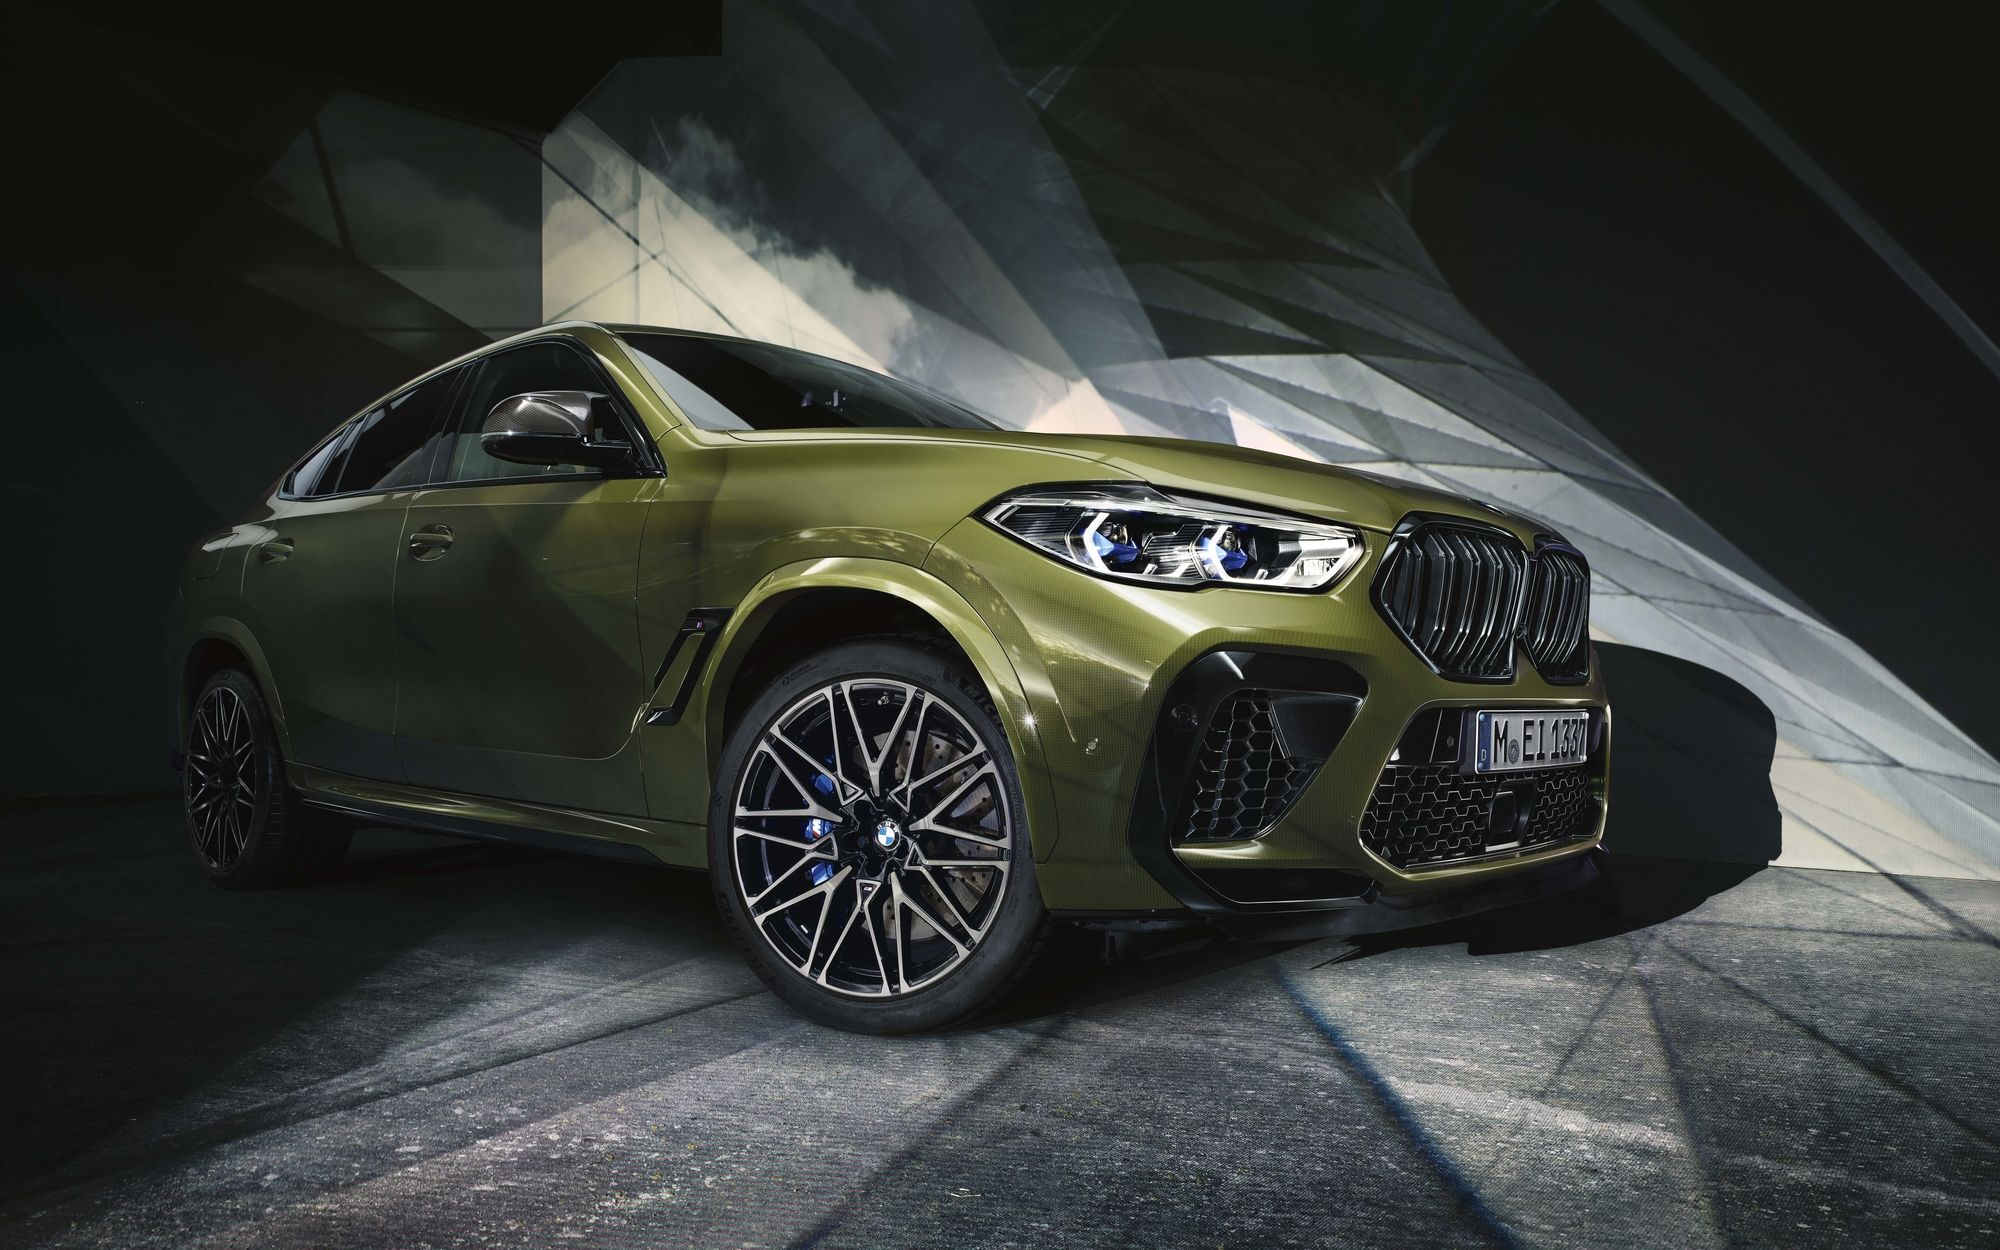 IGOR PANITZ : The BMW X5M and X6M Competition. Shot in the legendary Traffic-Studio by using a projector.